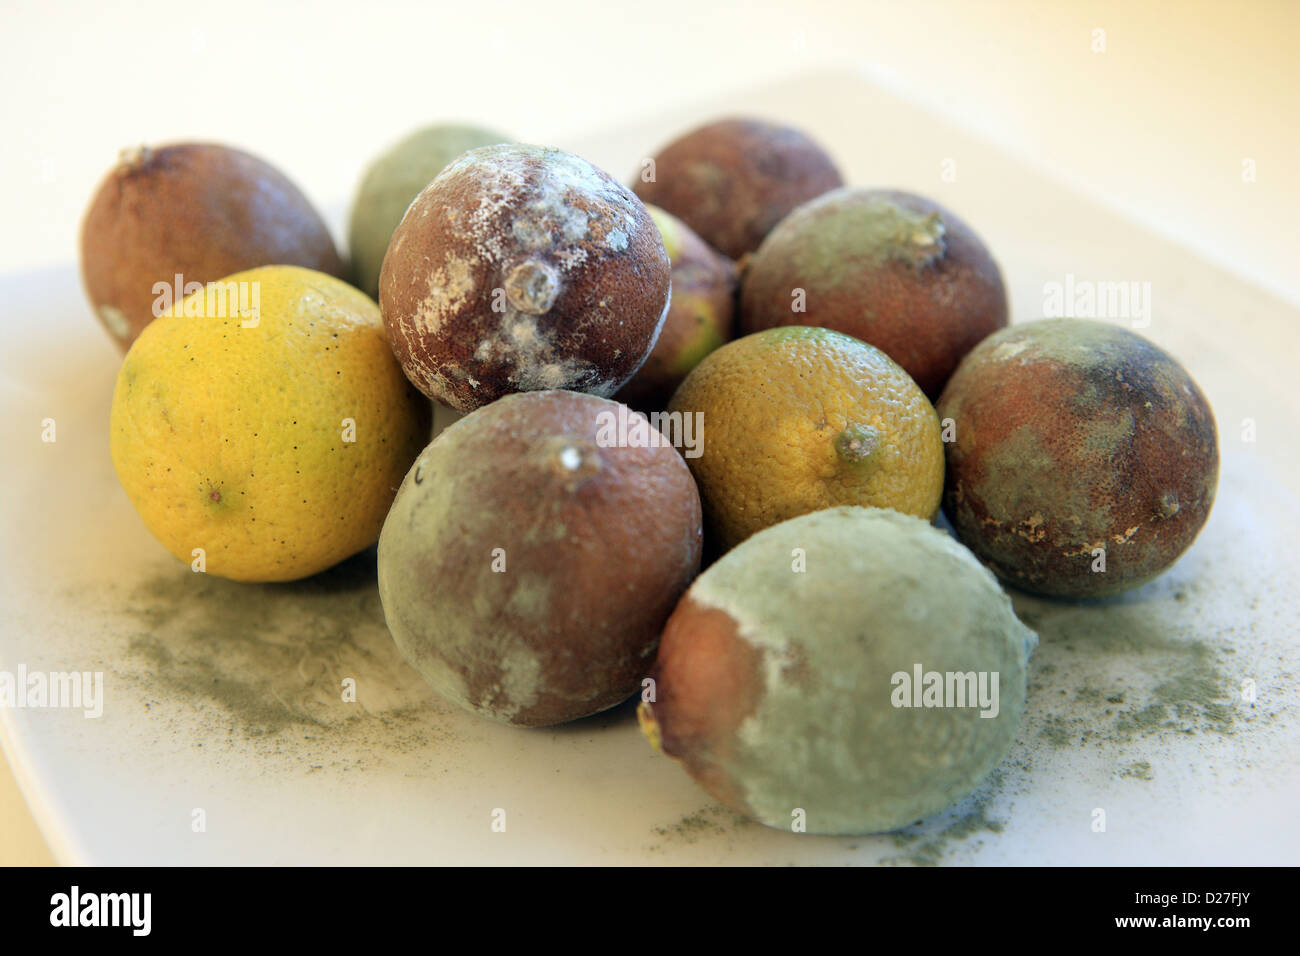 Limes turning brown and covered in blue green mould - Stock Image